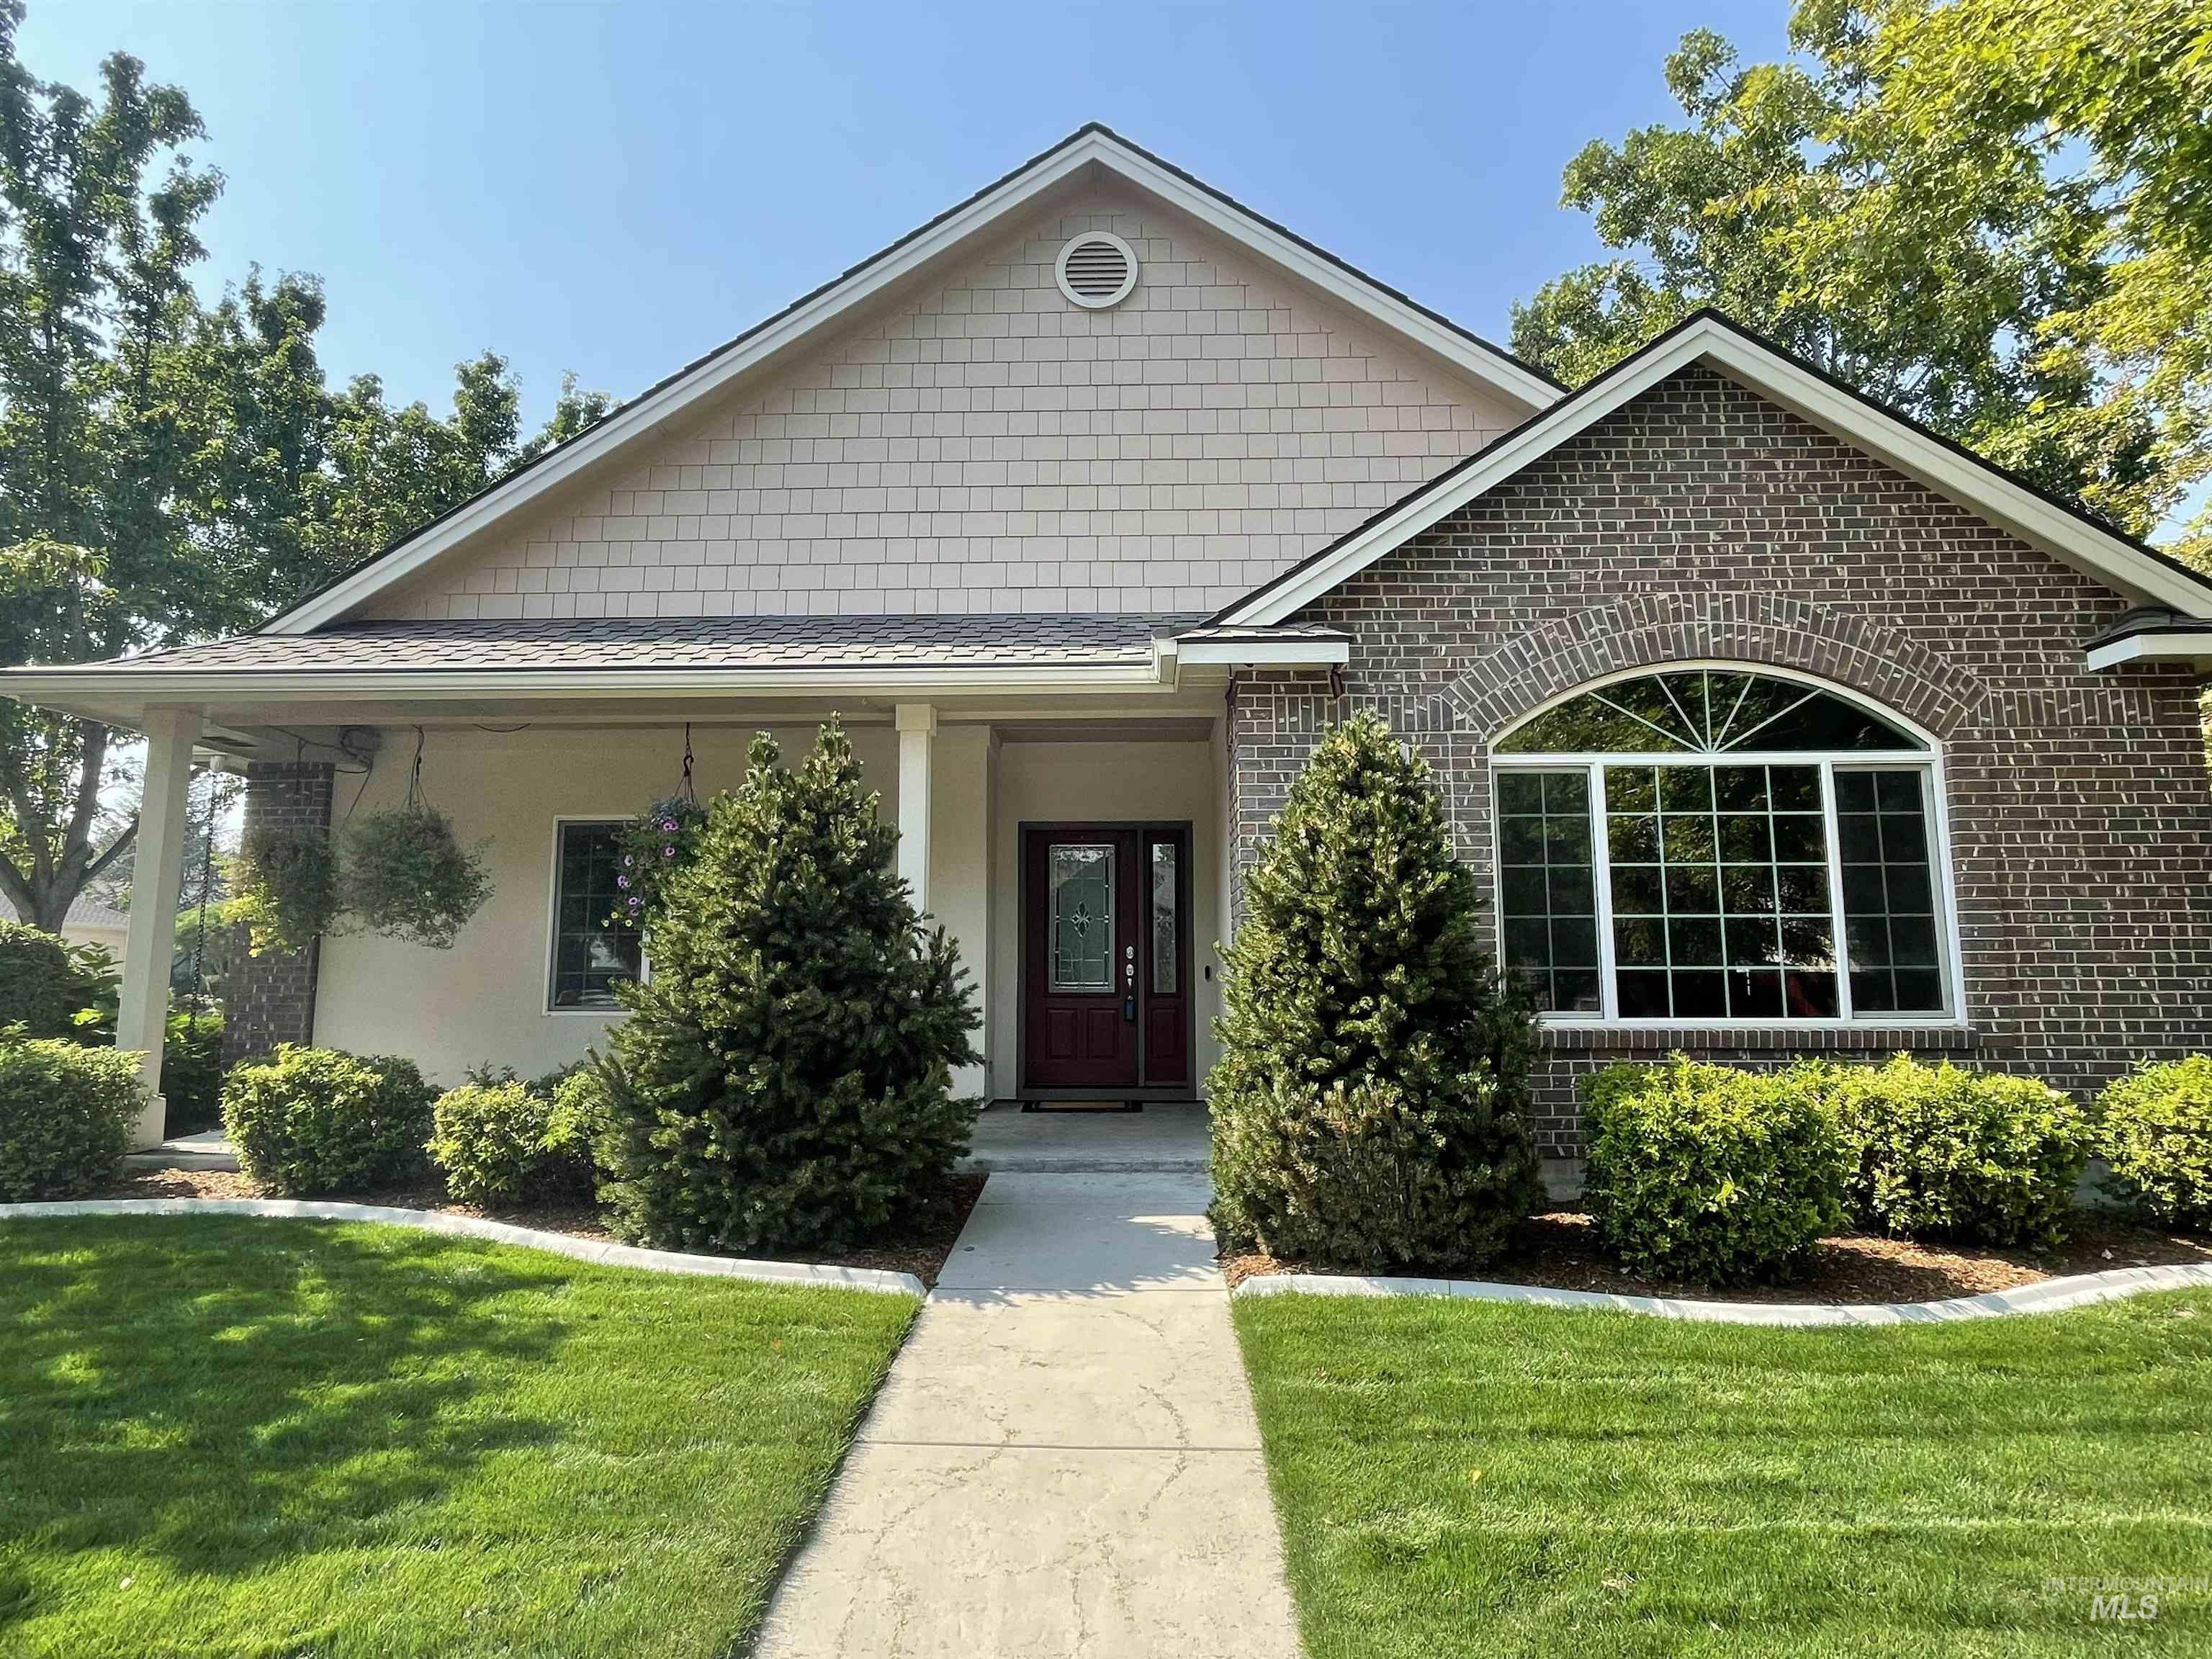 Beautiful 4 bedroom/3 bath home (could be 4 bedrooms and an office or 3 bedrooms, an office and a bonus room). Featuring hardwood floors, corian counter tops in the kitchen, and a formal dining room.  Open floor plan with gas fireplace. Large patio for outdoor entertaining with 2 Sun Setter awnings. Large master with walk in closet, Dual vanities, soaker tub and a Sun Valley Marble walk in shower, tile flooring. Dual zone heating and central vacuum. Mature beautiful landscaping on a nice corner lot, with a community irrigation system. Storage shed attached to the oversized 3 car garage. Epoxy flooring in garage. Beautiful neighborhood, walking distance YMCA, near The Village, shopping, parks and more!  Don't miss out on this home.  Call for your private showing today! Property has been well maintained and is being sold as is. - Michelle R Newell, Voice: 208-713-4571, Fathom Realty, Main: 208-576-4717, http://www.buyboisehomes.com